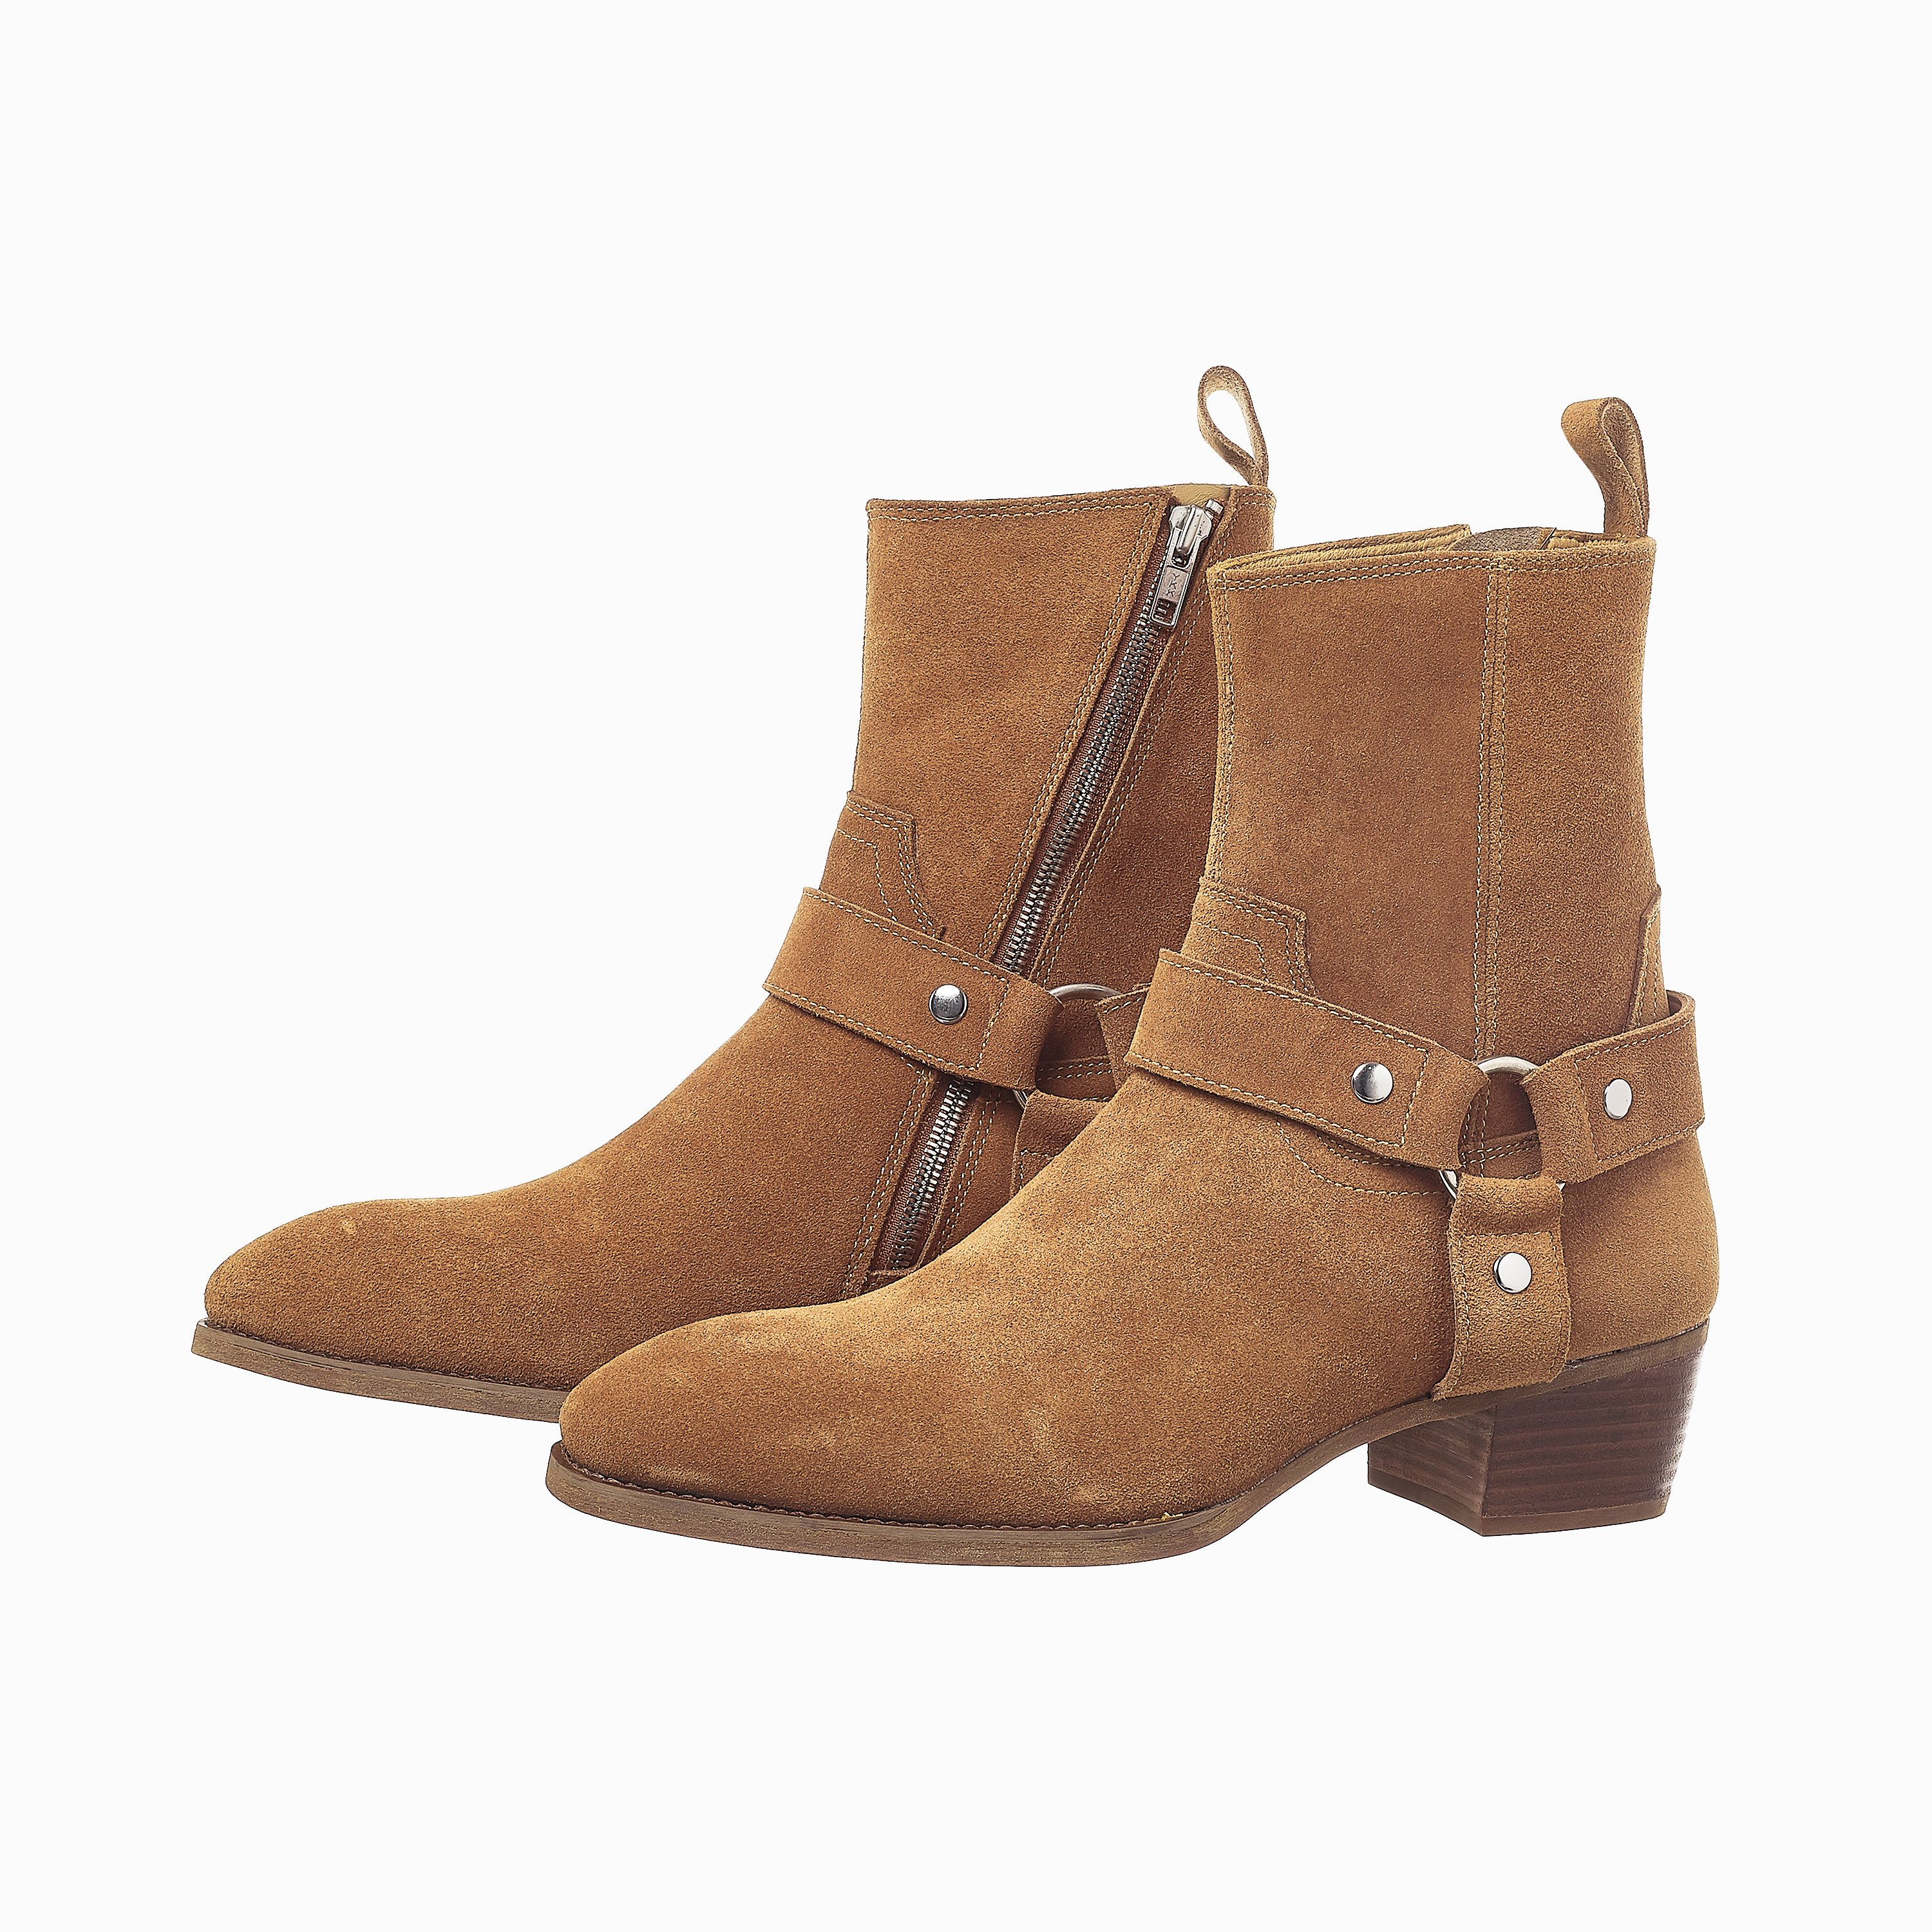 Suede Harness Boots In Tobacco Suede Harness Boots In Tobaco SS2020 1 1